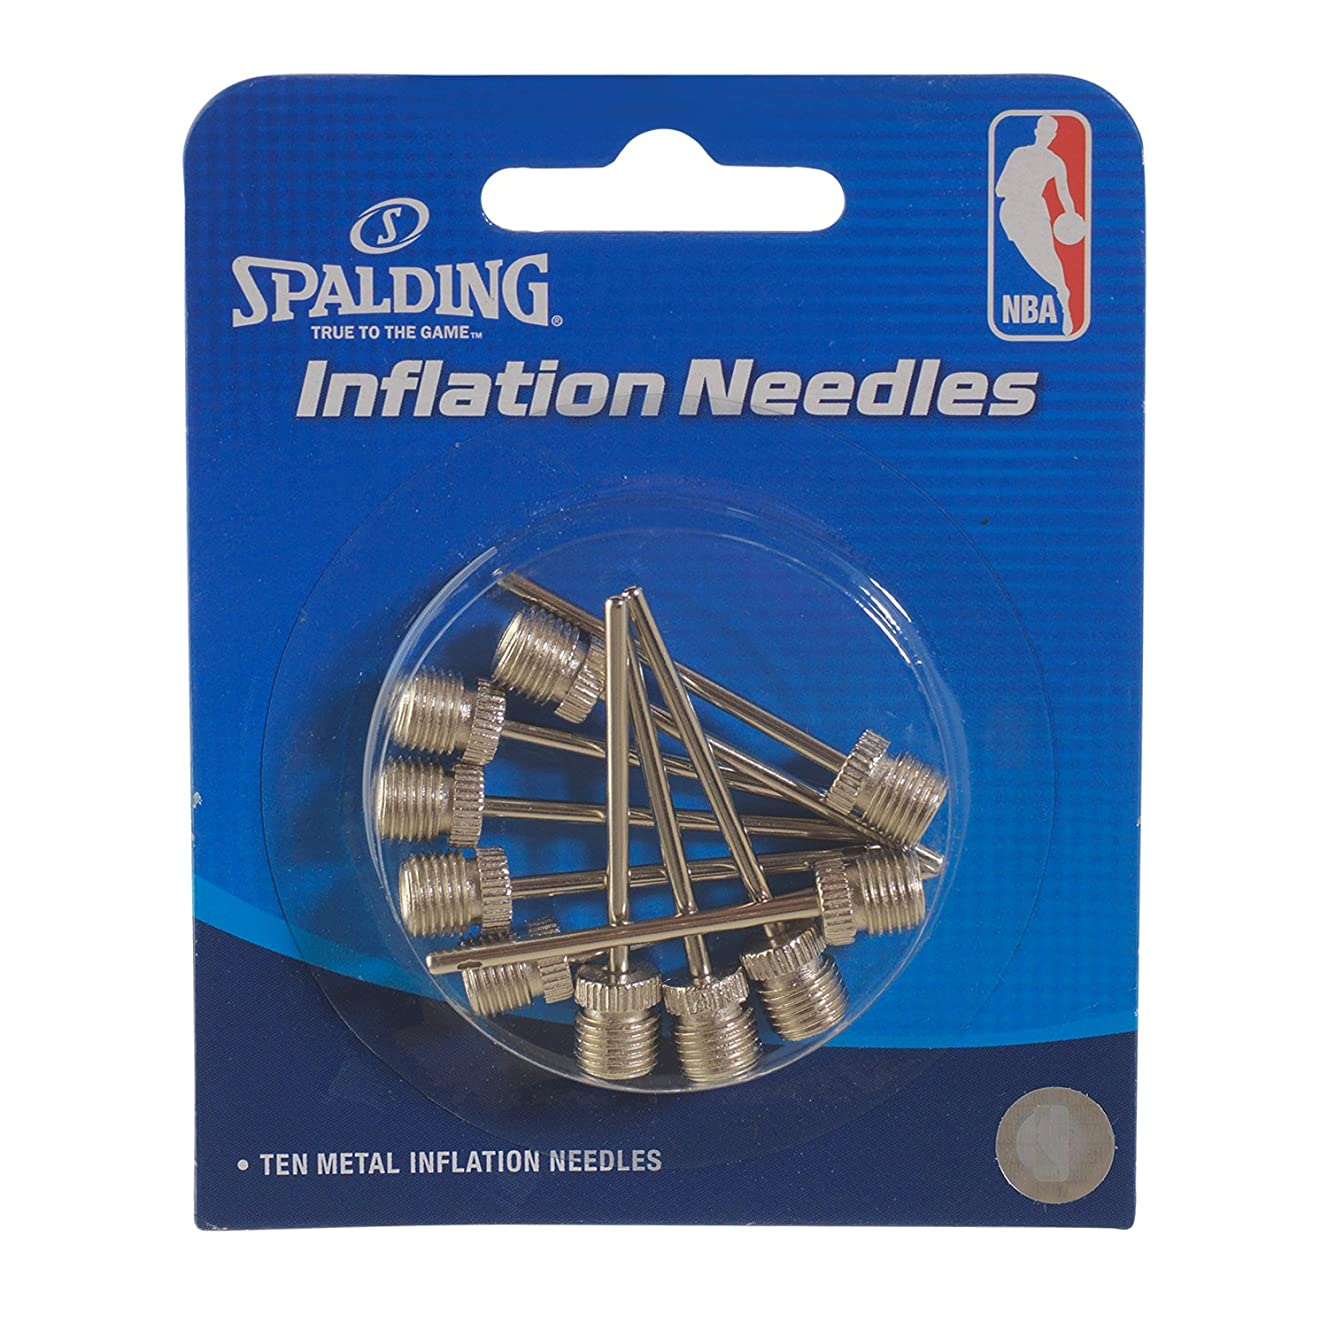 Spalding Inflating Needles dxw2990327